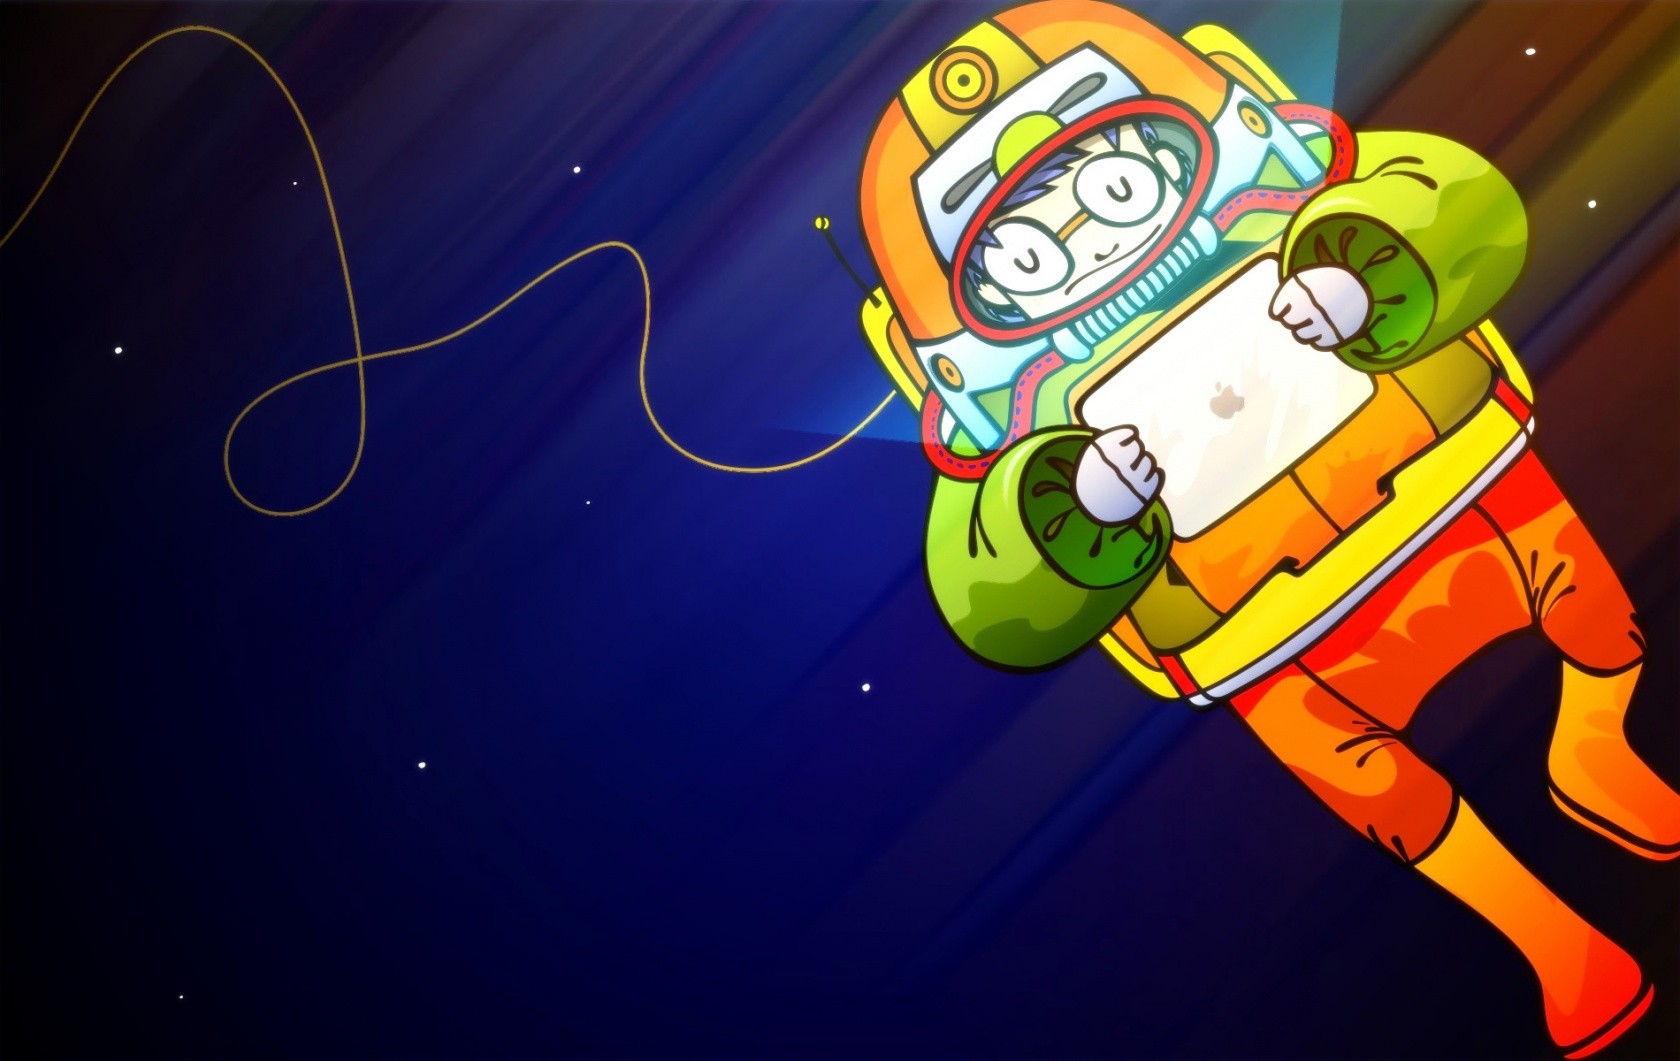 3d Animated Wallpapers For Windows 7 Astronaut With Ipad Wallpapers Astronaut With Ipad Stock